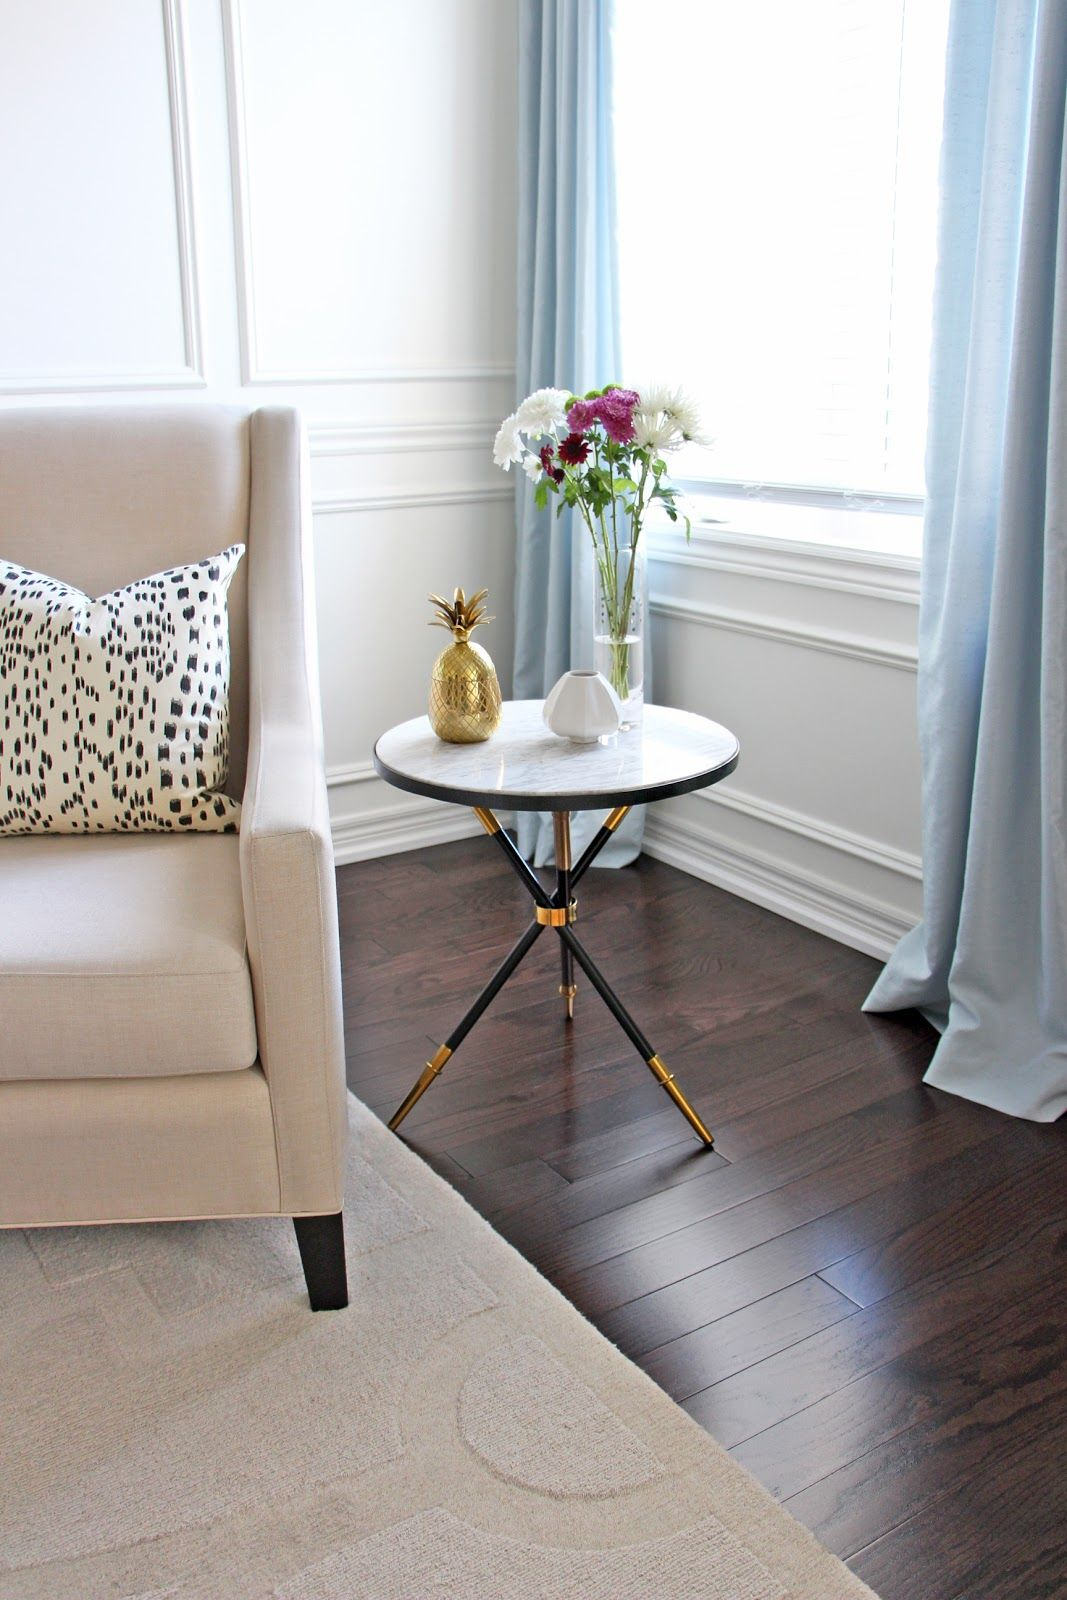 jonathan adler rider tripod table lookalike homesense marble side accent tables les touches pillow black mirror dining drum chair small oak occasional pair antique nautical end